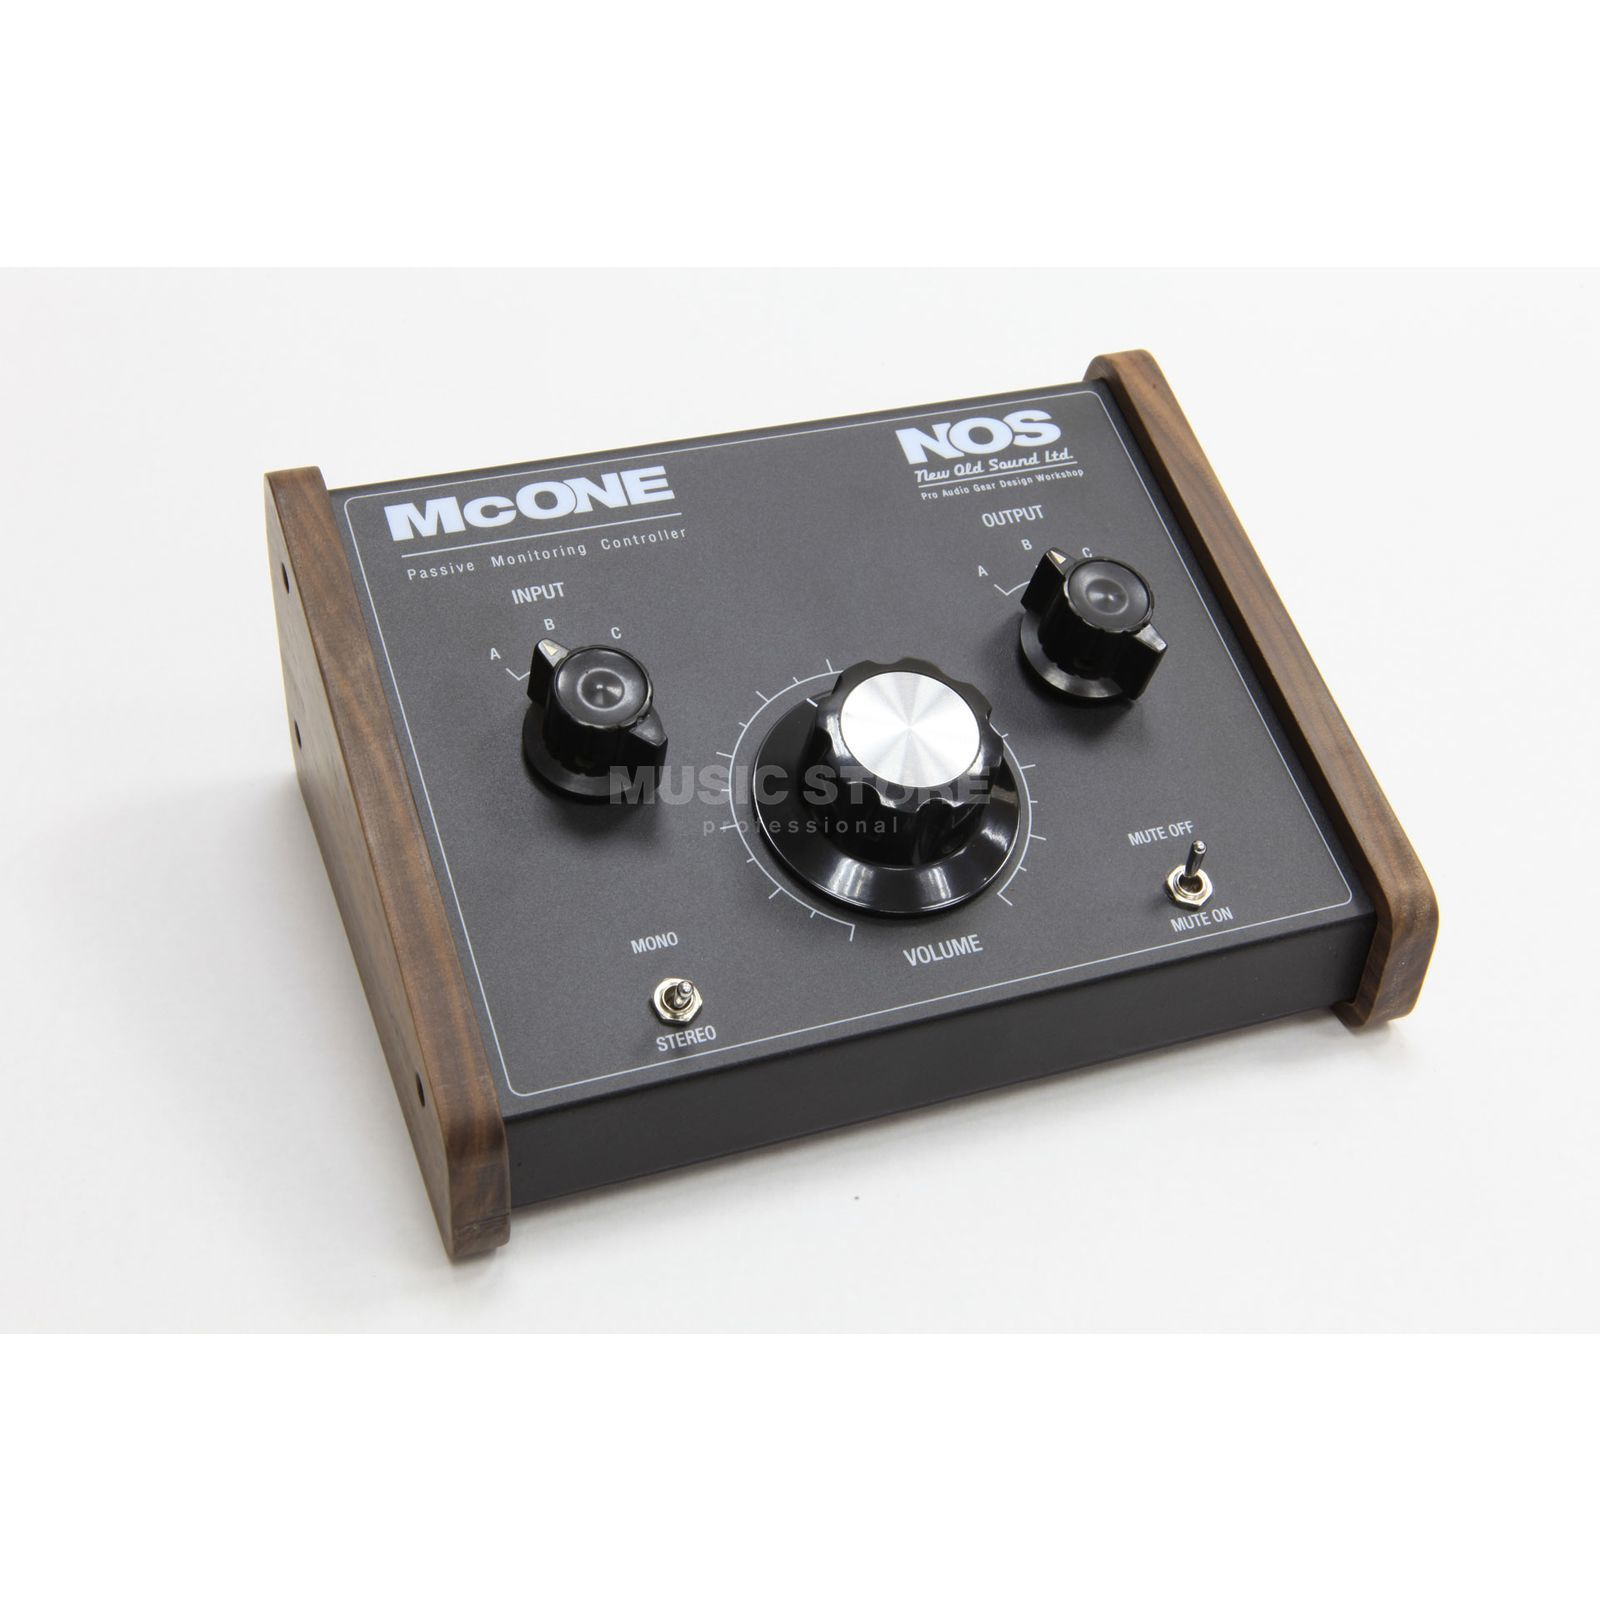 New Old Sound McONE -B-Stock- Monitorcontroller, gerastert Produktbild